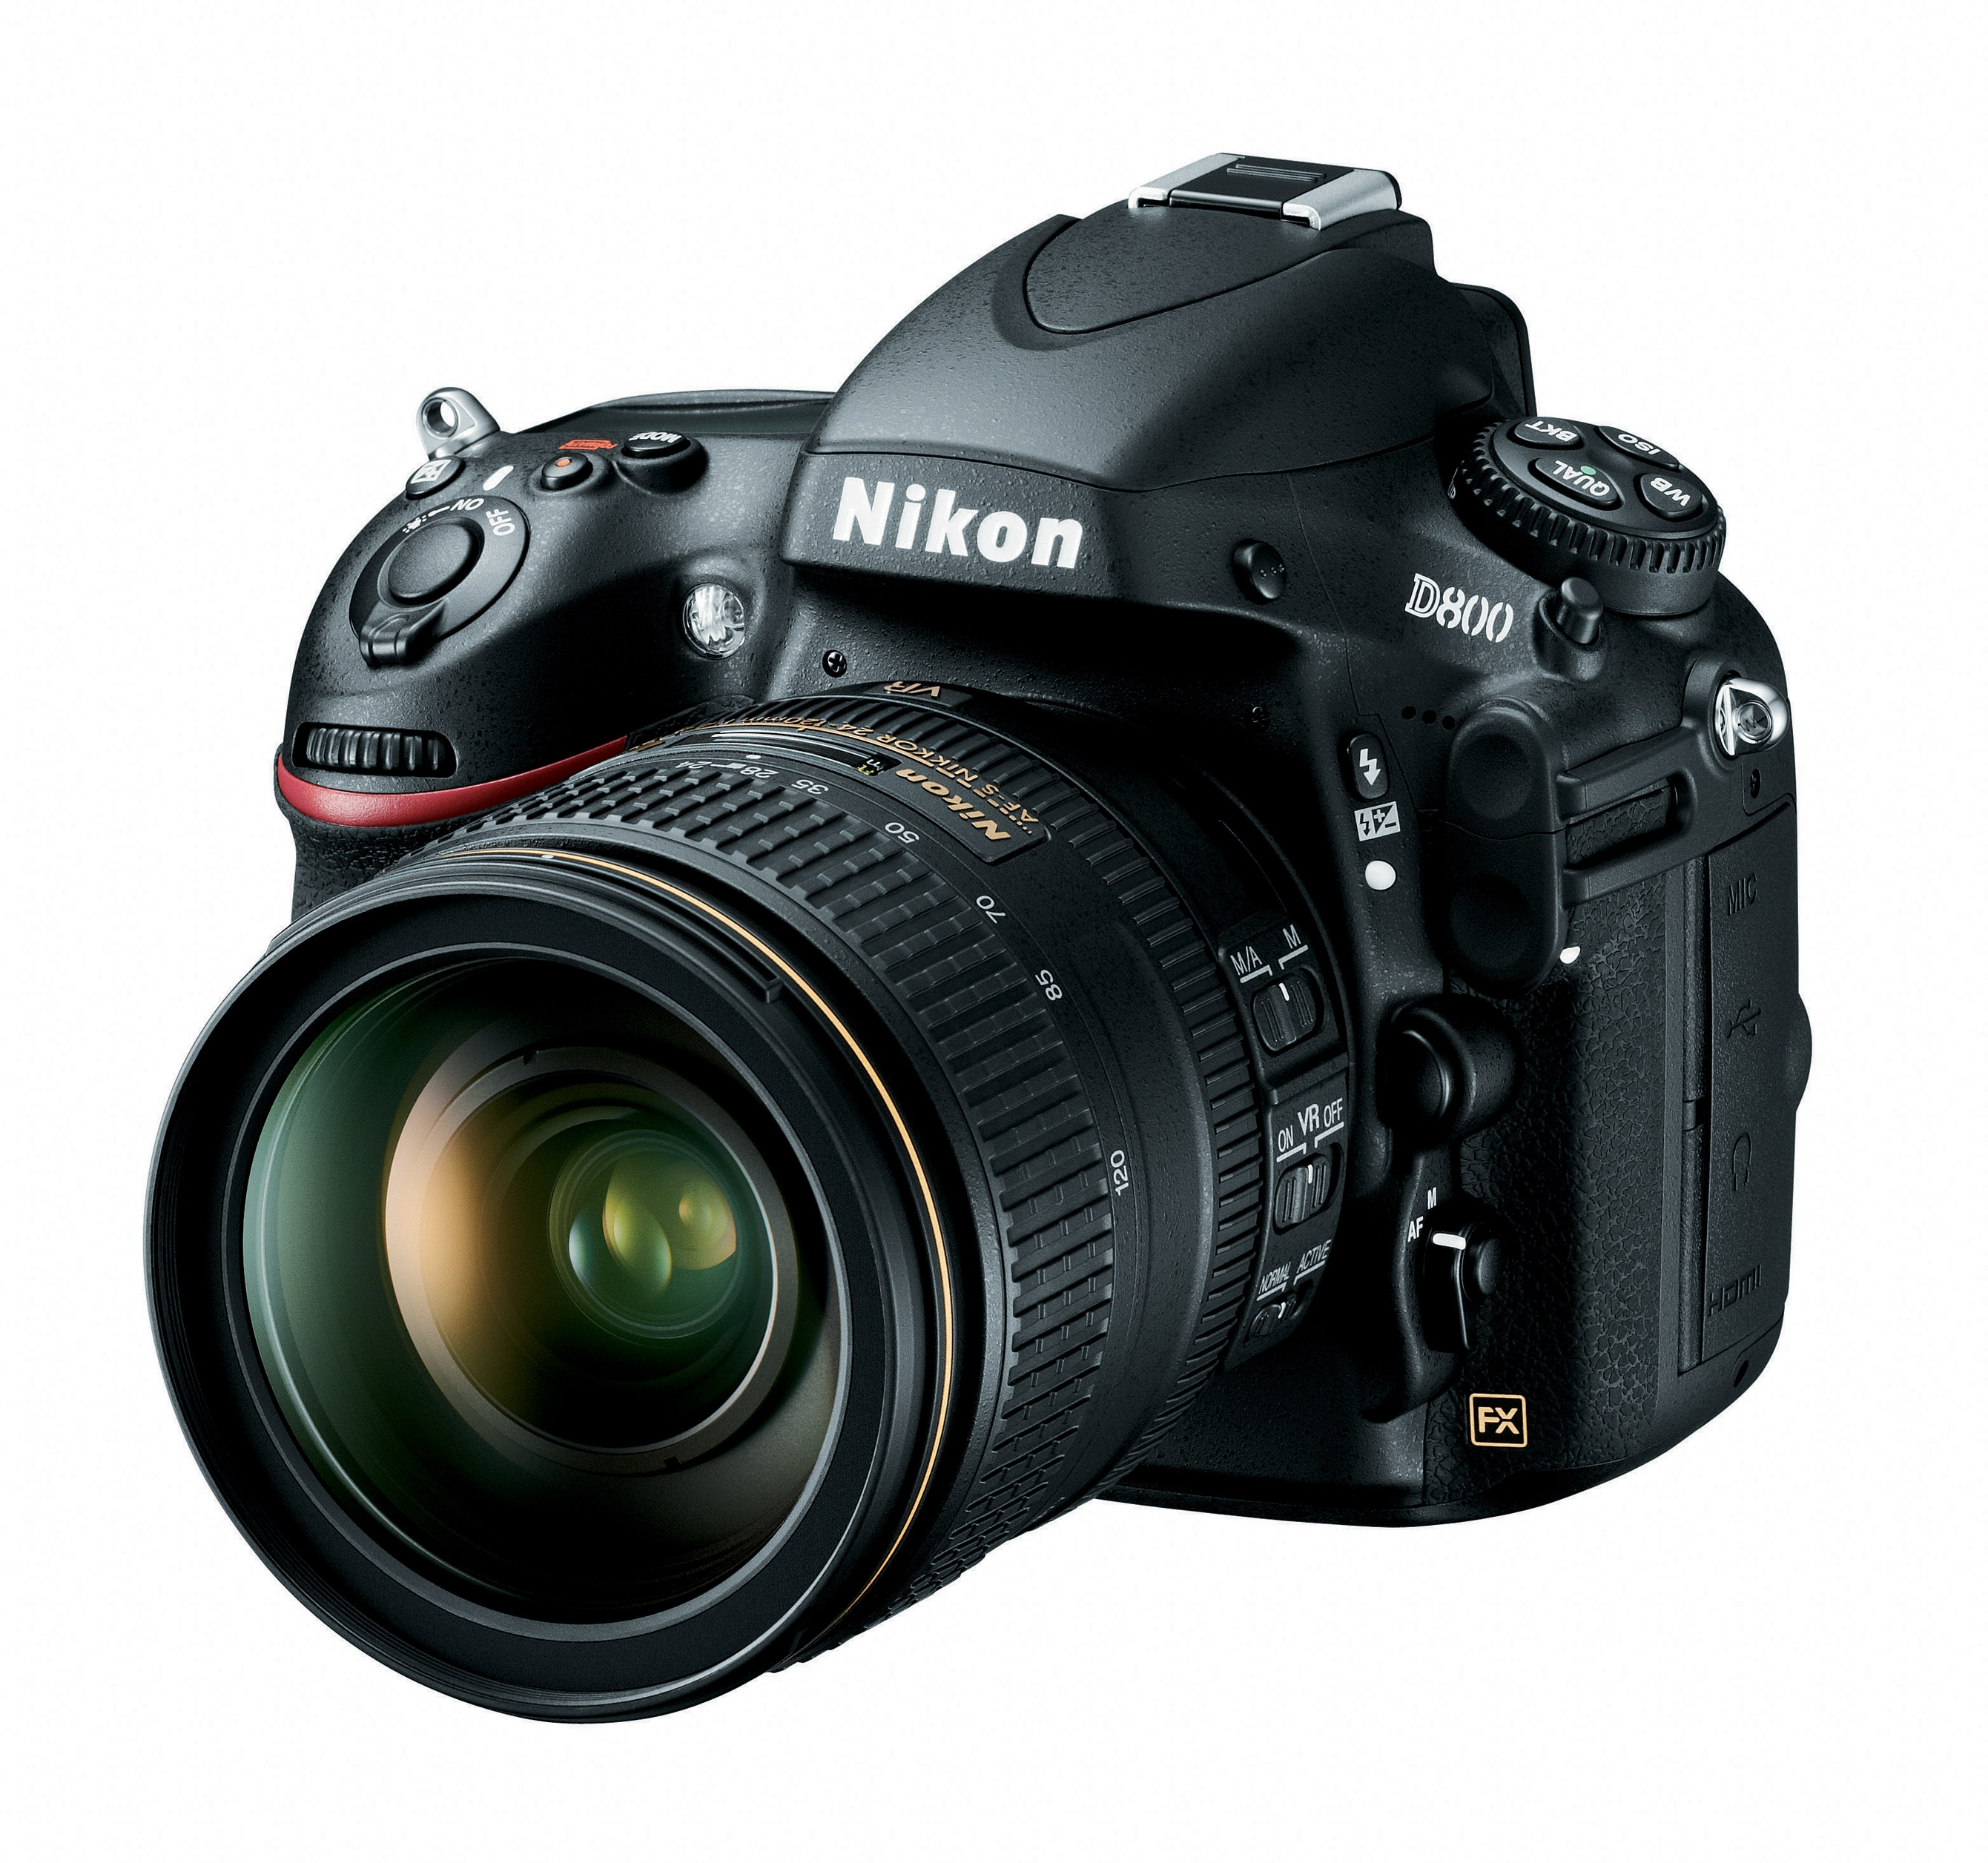 Camera Nikon D800 Dslr Camera nikon announces the d800 dslr a more powerful camera camera